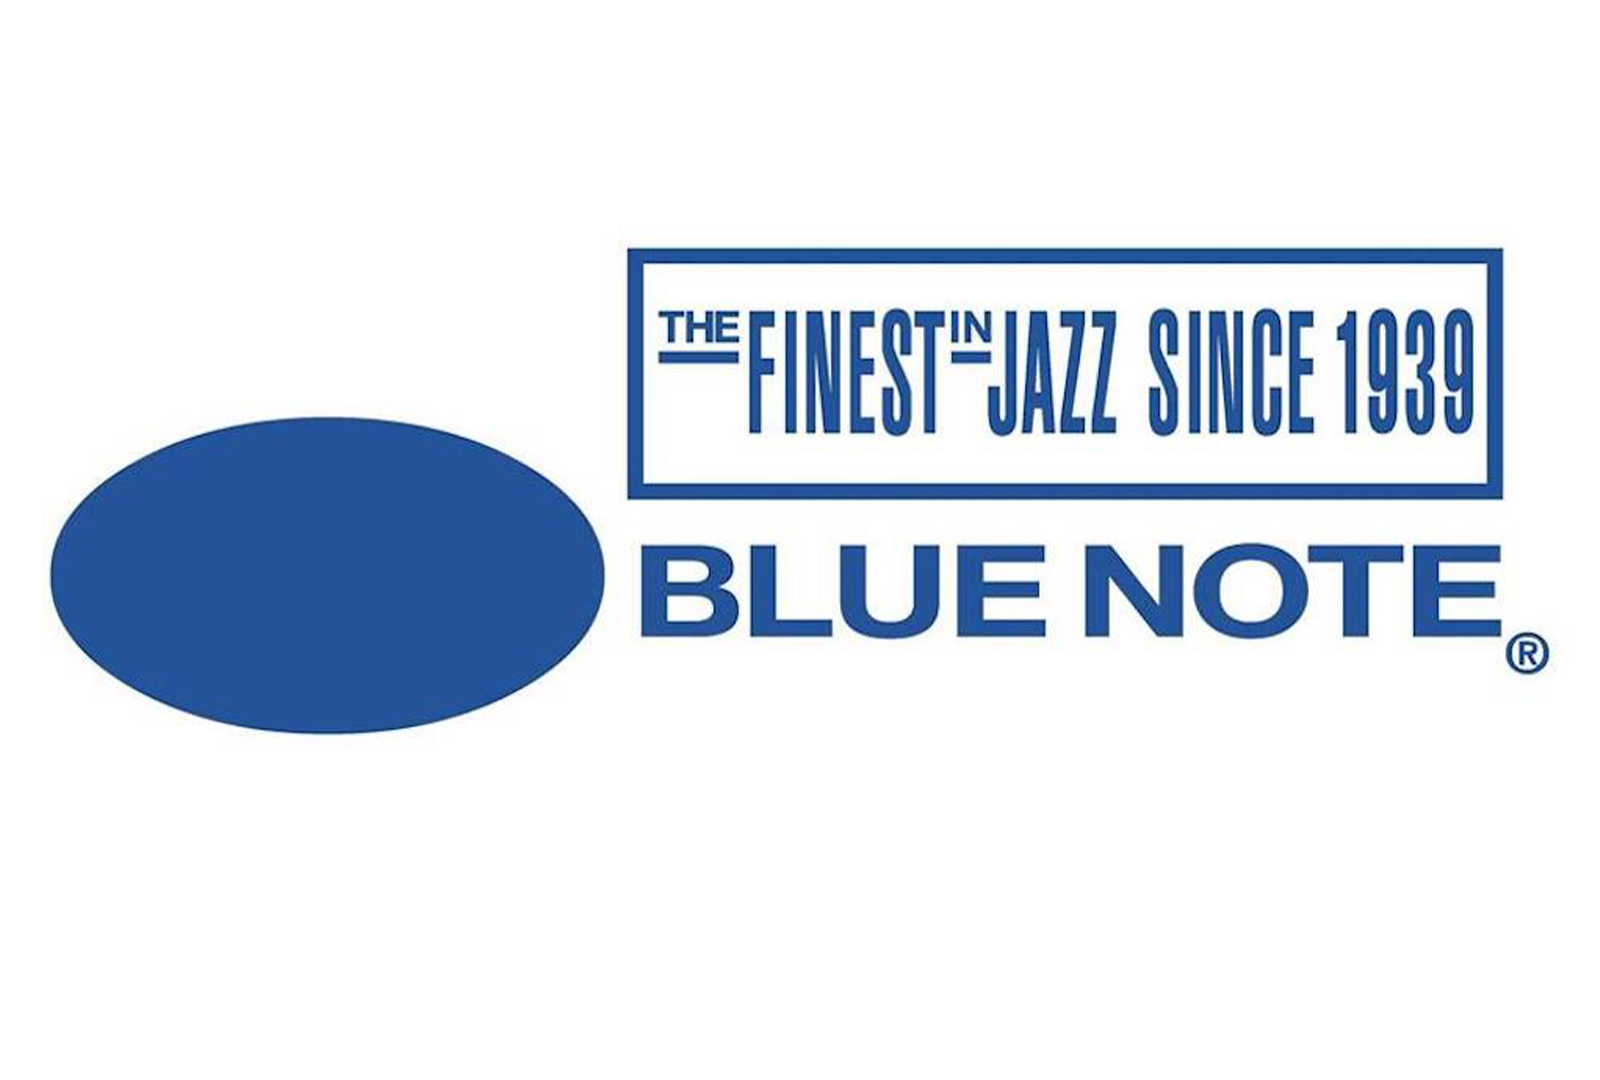 Blue Note launches vinyl-only reissue series